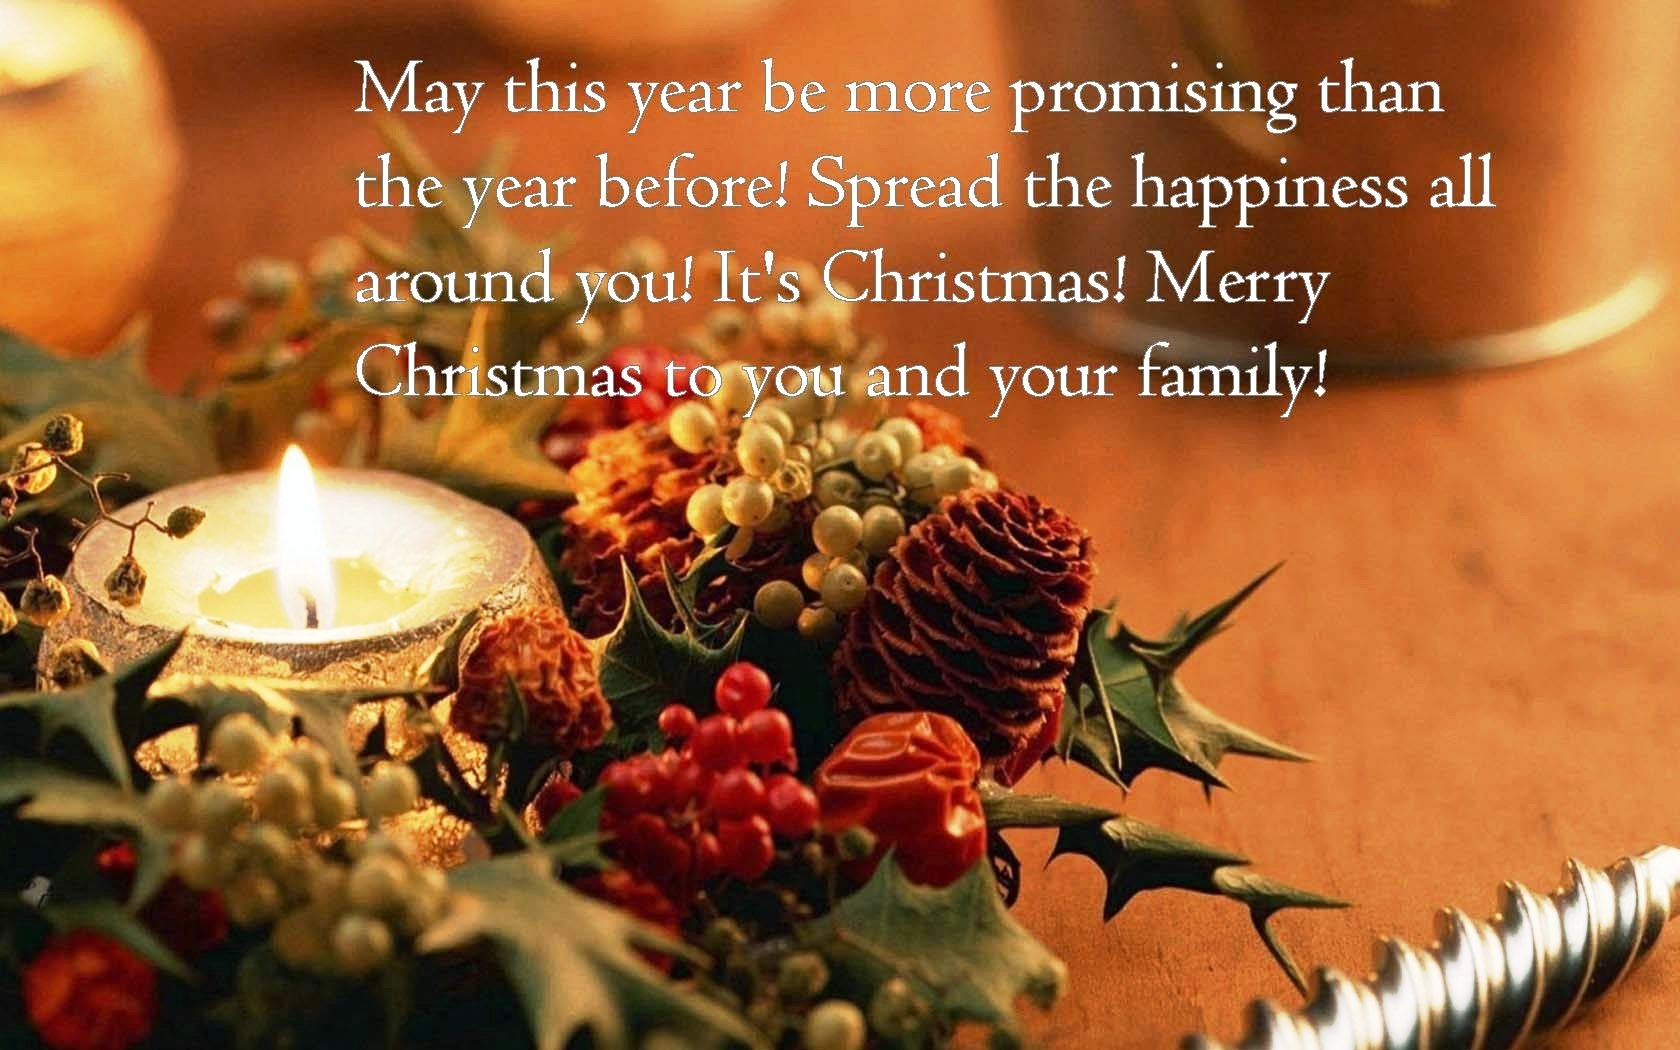 Nice Your Family Your Family Merry To You Merry To You Images Eve Quotes Facebook Eve Quotes Wallpapers inspiration Christmas Eve Quotes